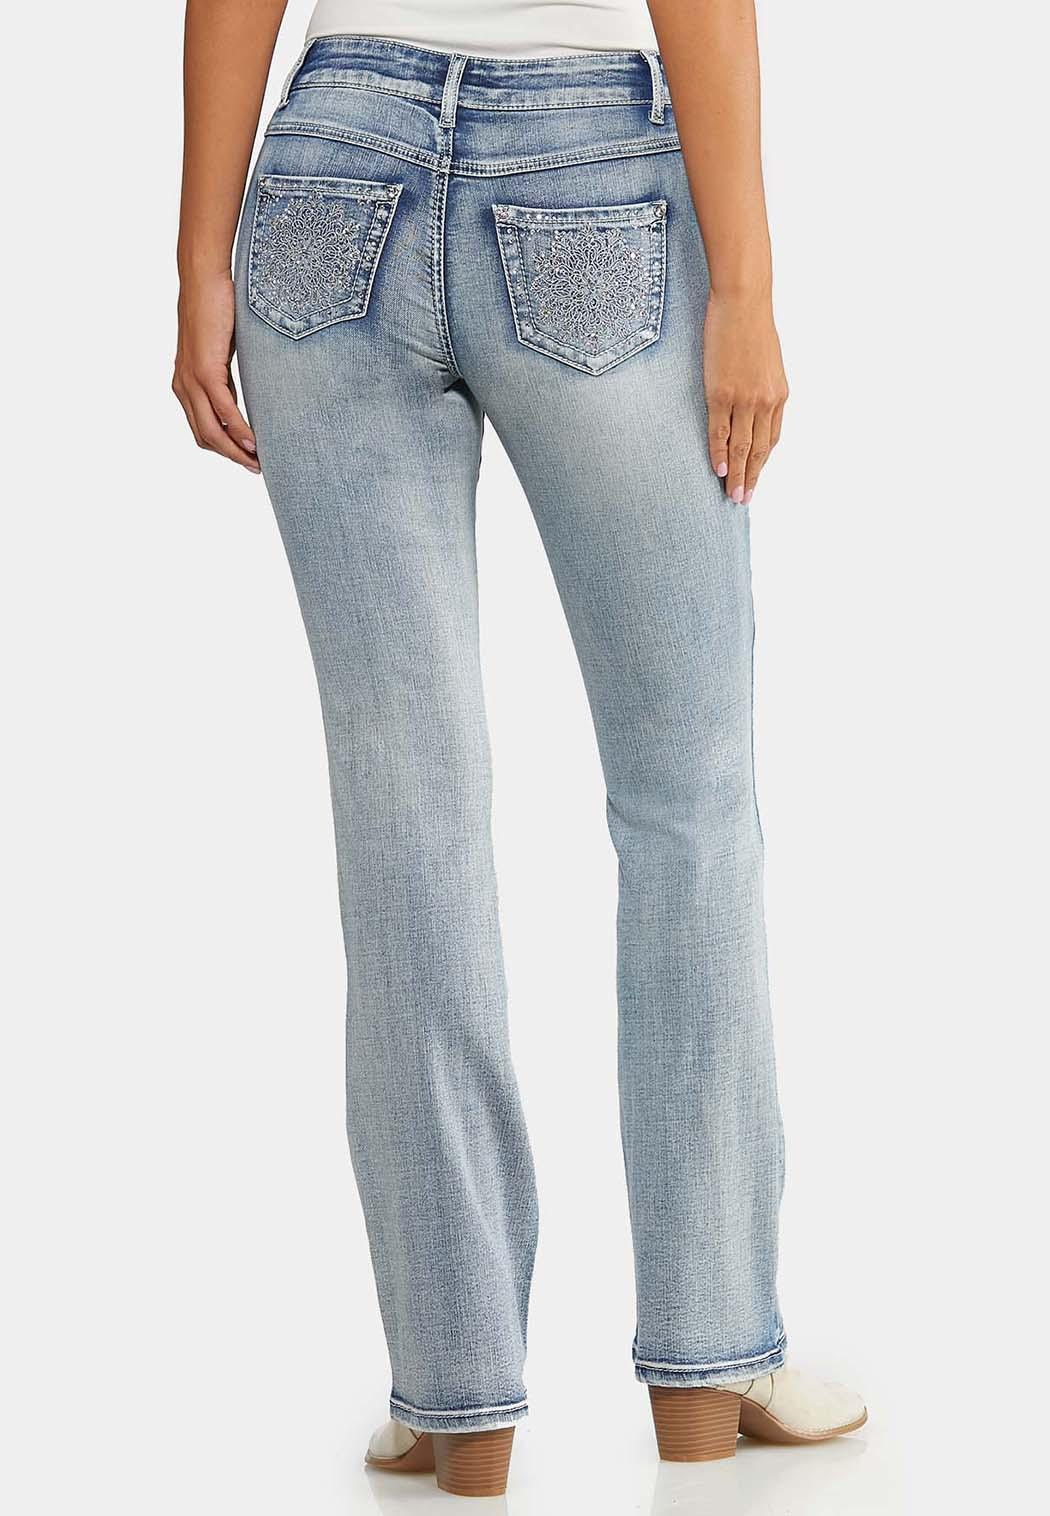 Petite Sparkling Embroidered Jeans